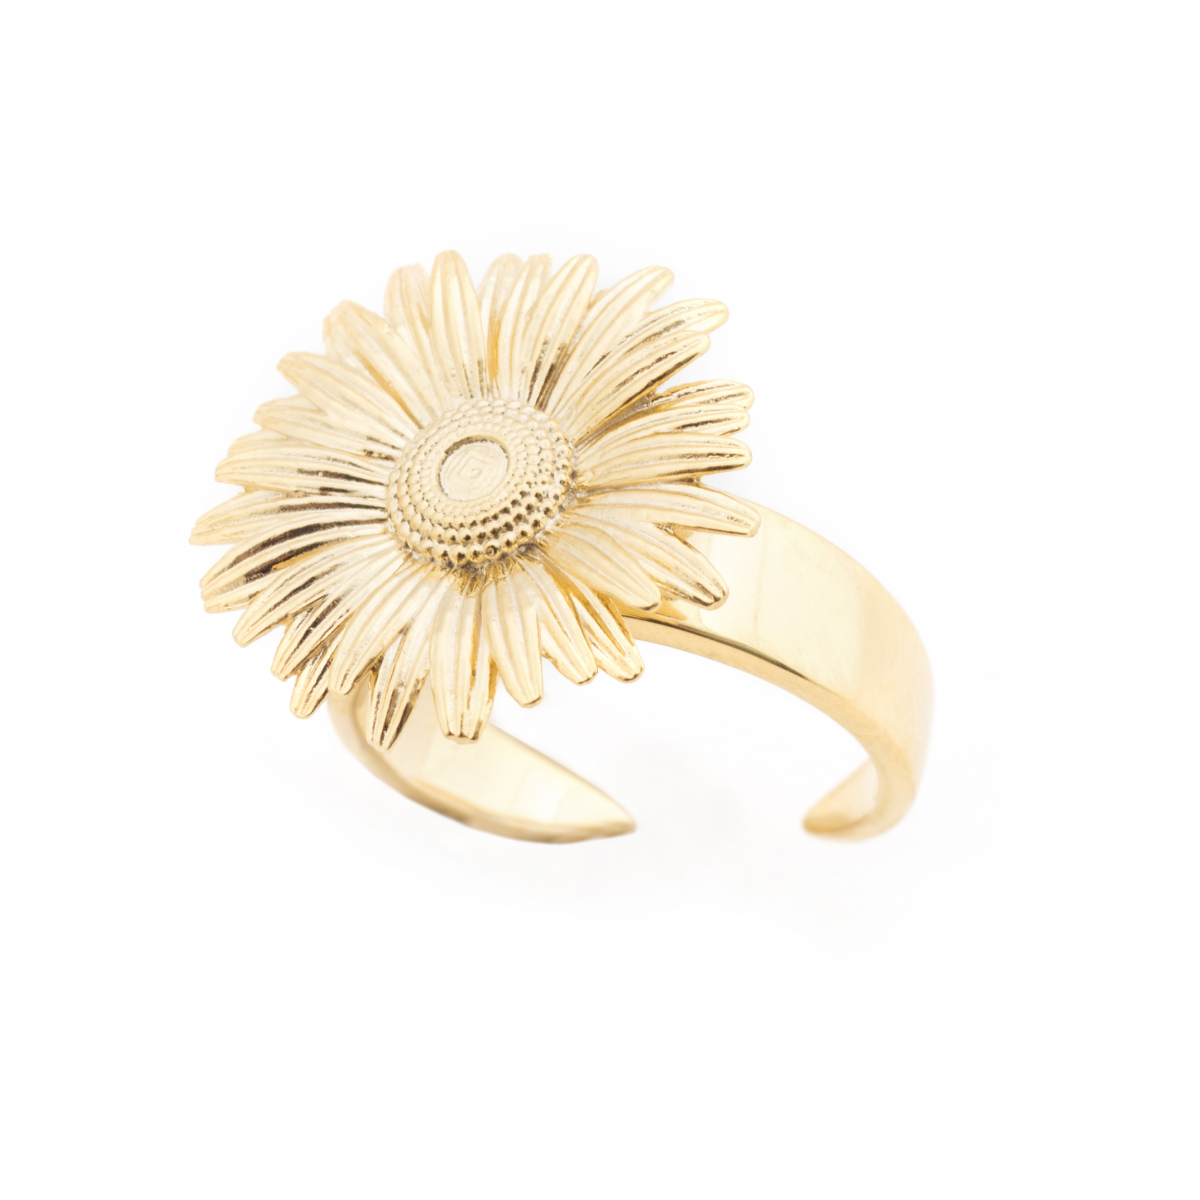 Daisy Open Ring - Gold